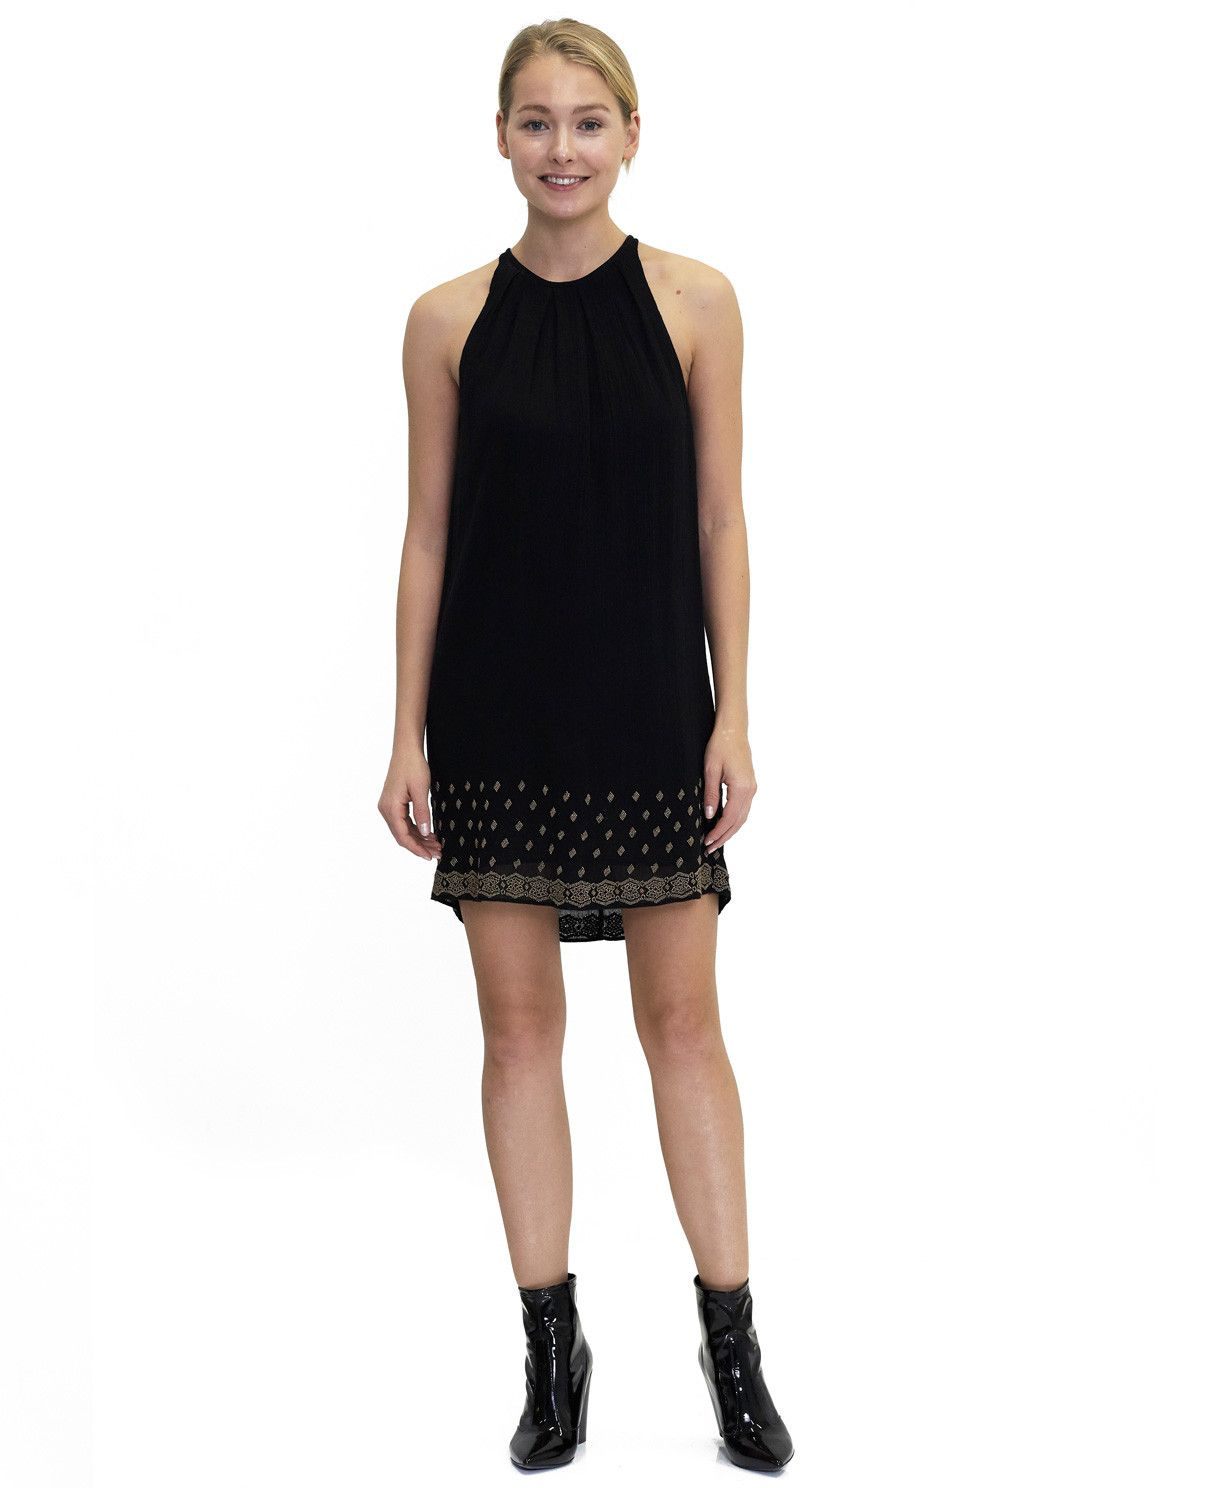 Tangrine NYC women's cotton beaded Alexandra dress in black best seller